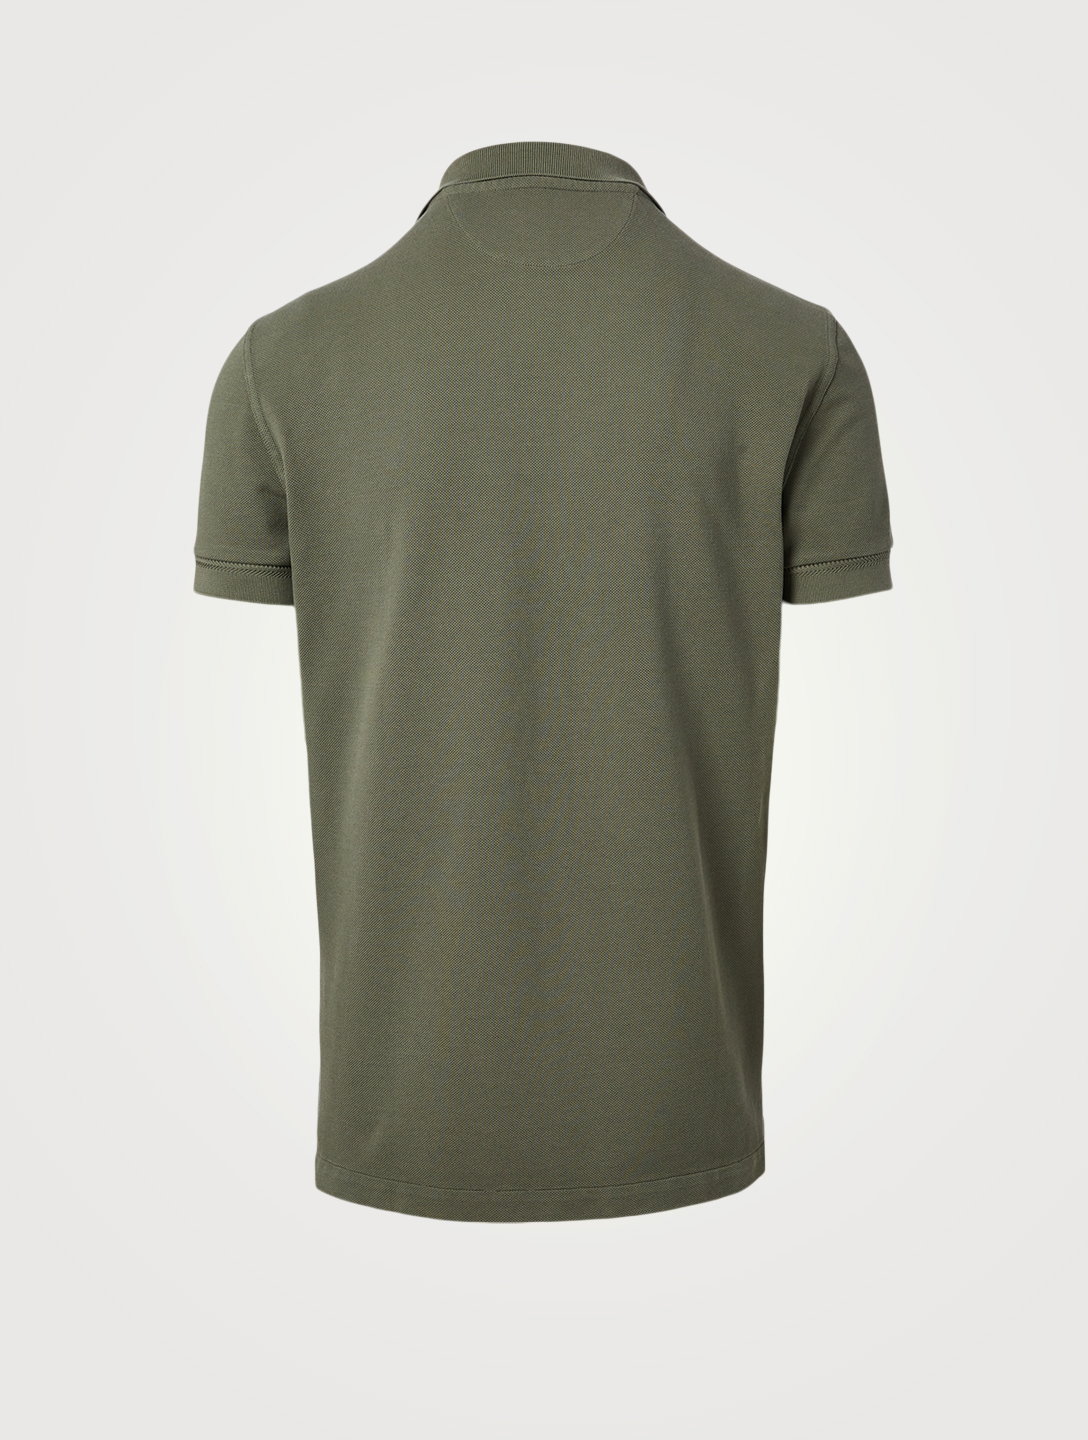 TOM FORD Piqué Polo Shirt Men's Green